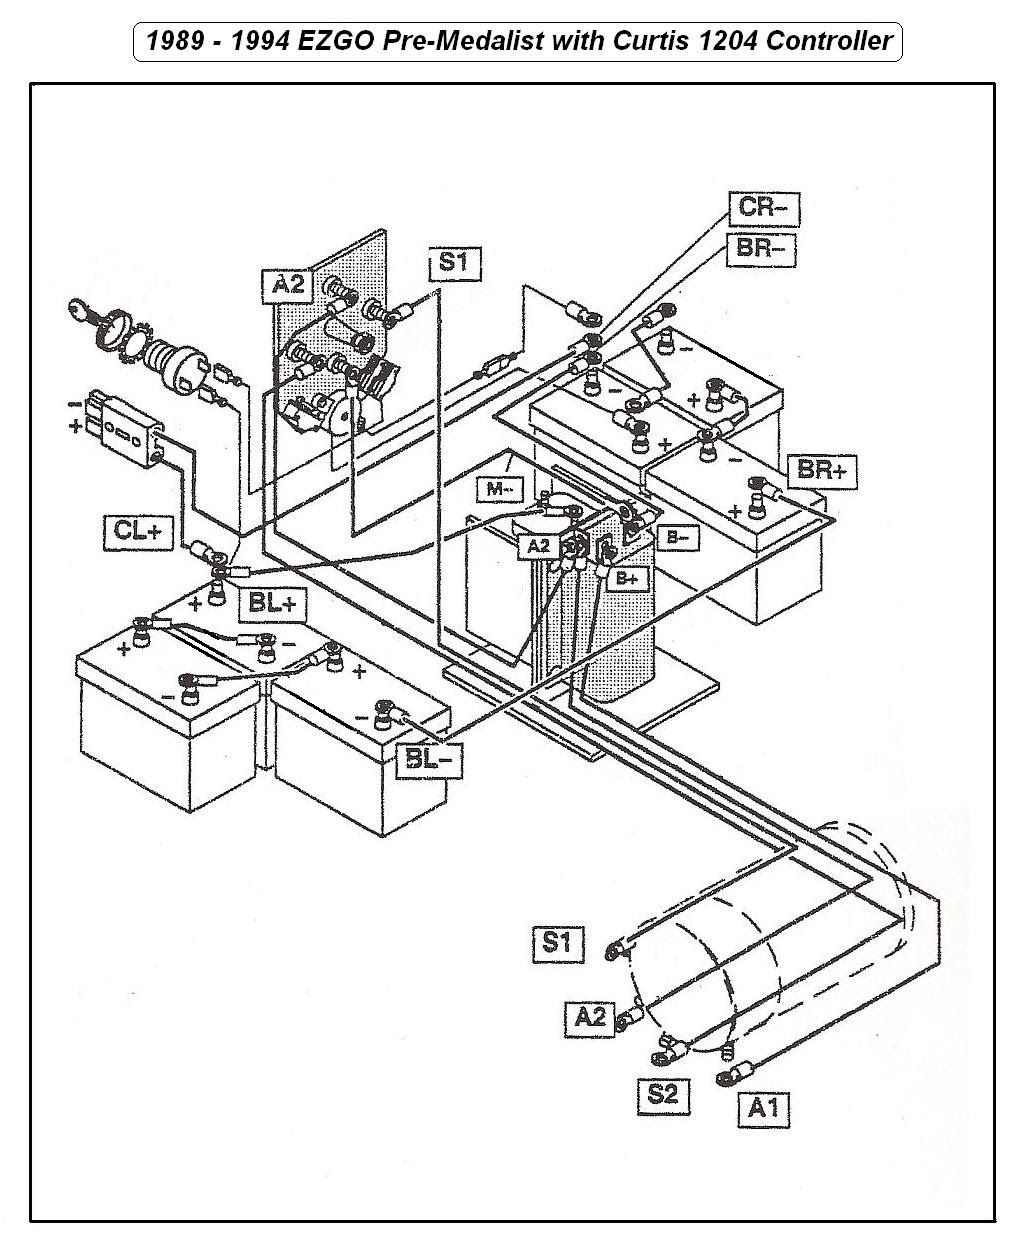 1997 Ezgo Txt Wiring Diagram - General Wiring Diagram